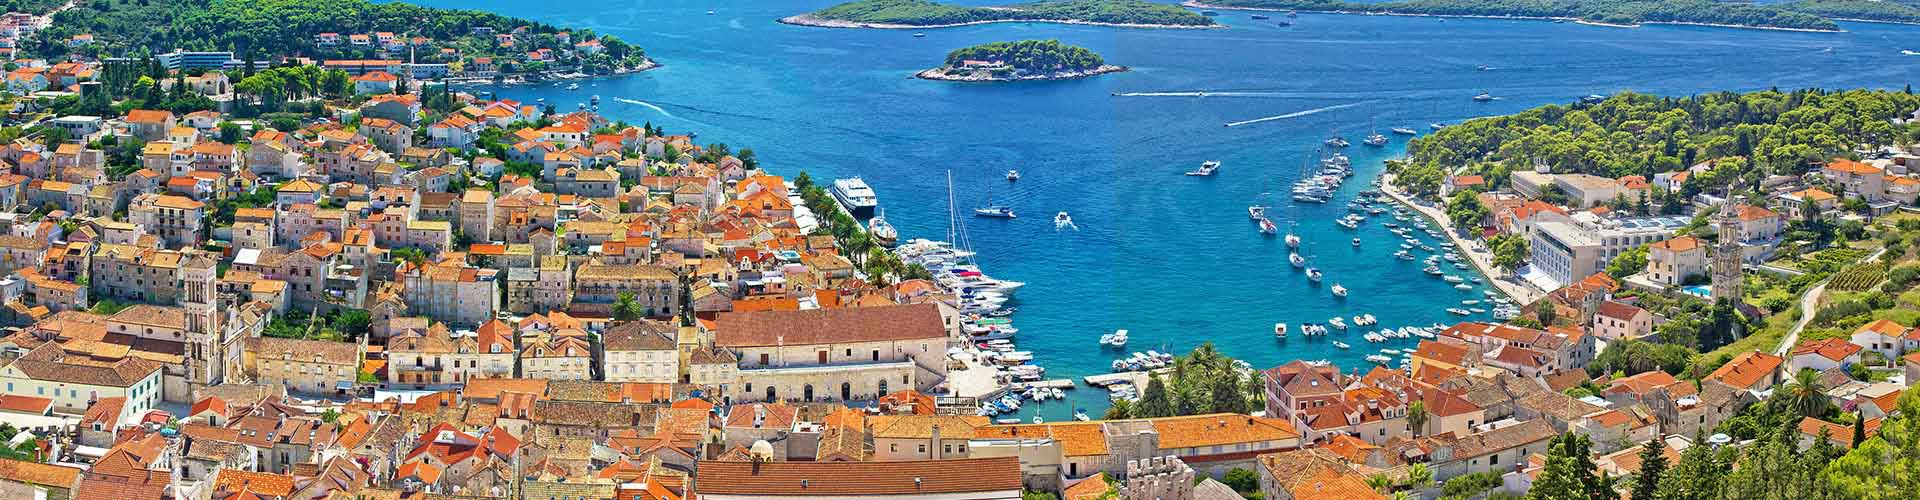 Hvar – Student accommodations, hostels and coworking spaces in Hvar (Chorwacja). Maps of Hvar, photos and reviews for each place in Hvar.